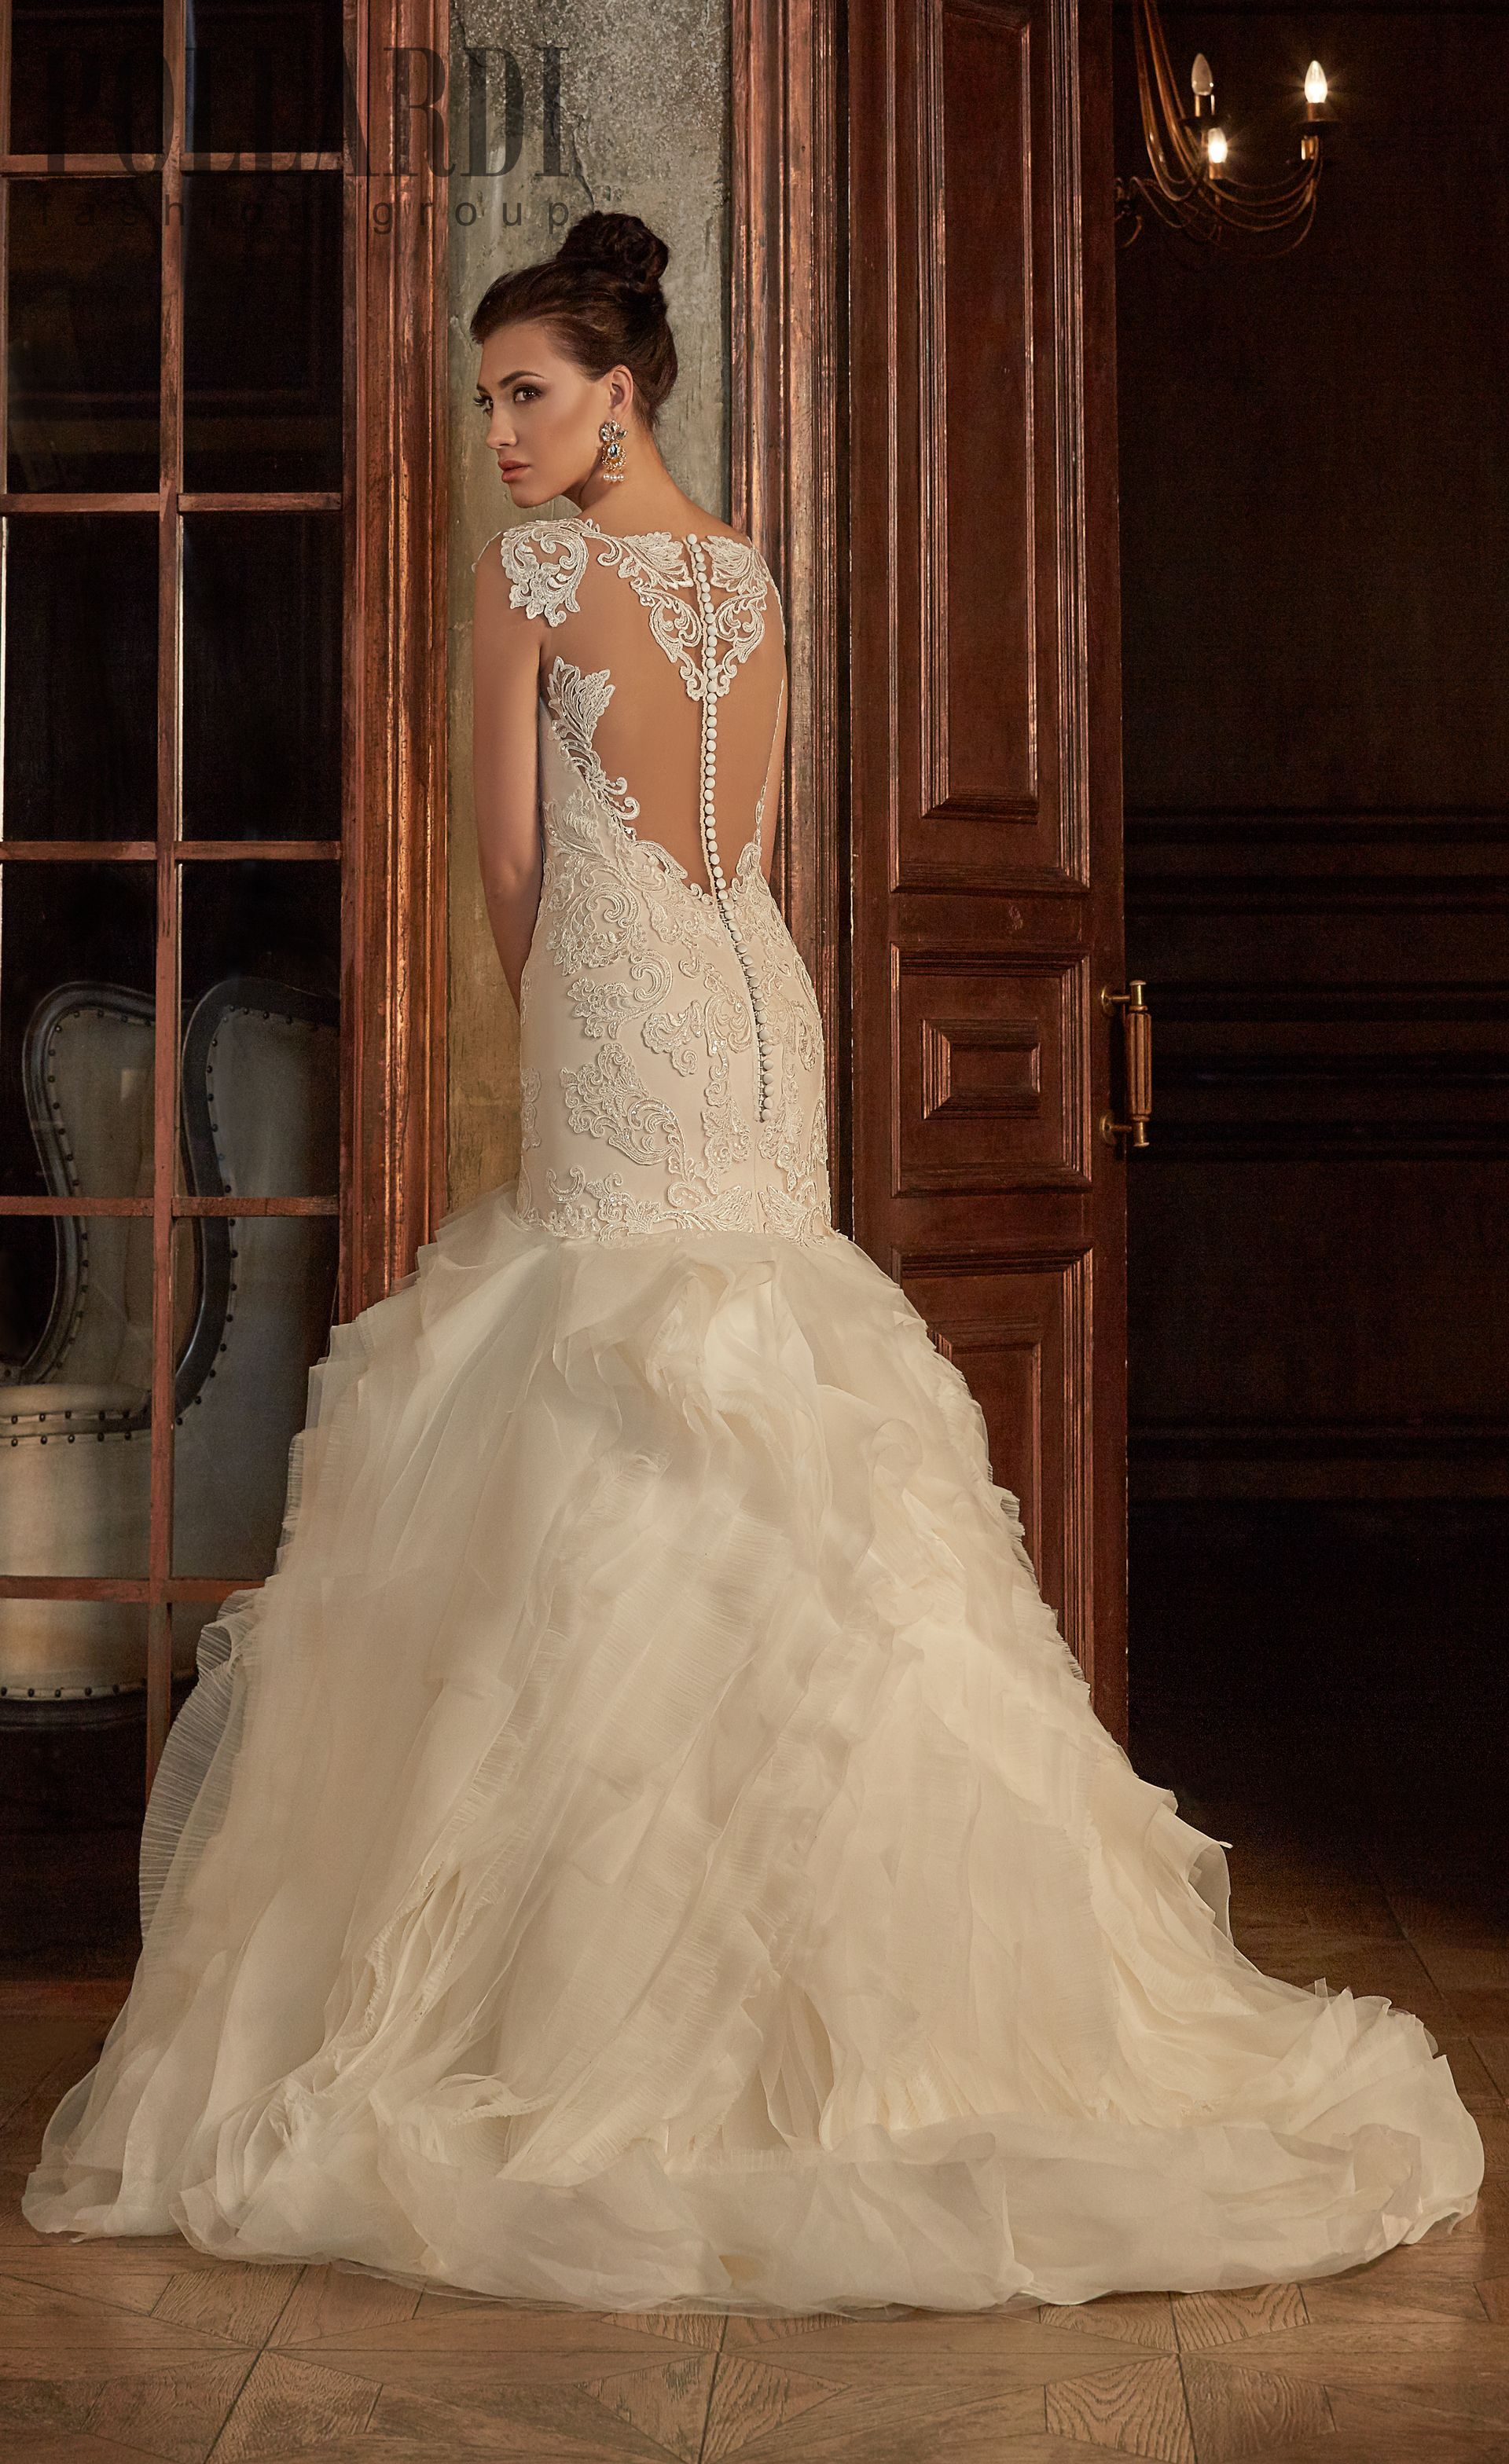 Elite wedding dresses  PL  Etereo  Fit for a Bride Elite Bridal Boutique  Pinterest